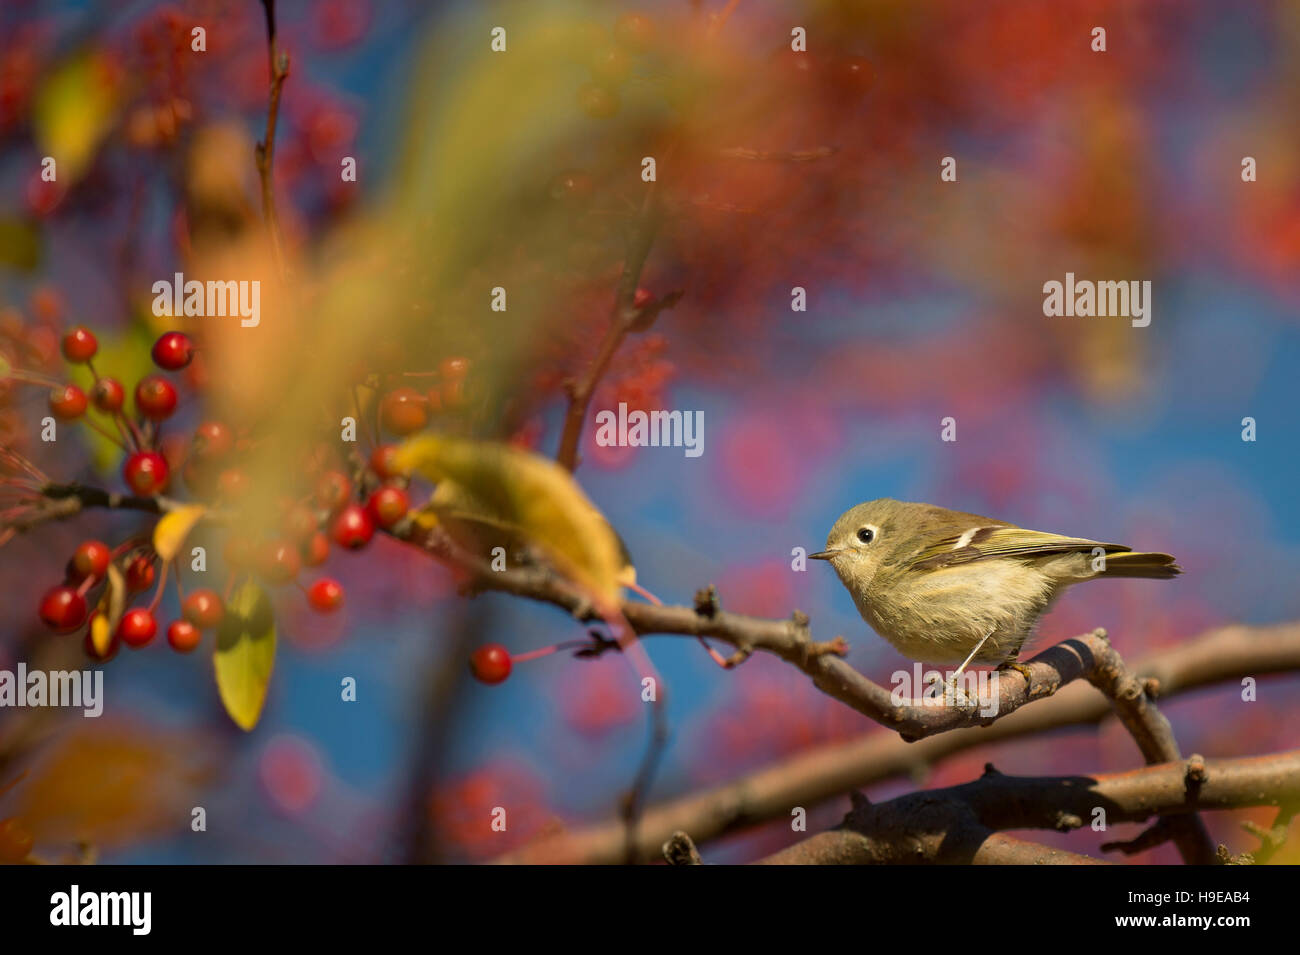 A tiny Ruby-crowned Kinglet perches on a branch in a tree full of bright red berries on a sunny fall morning. - Stock Image